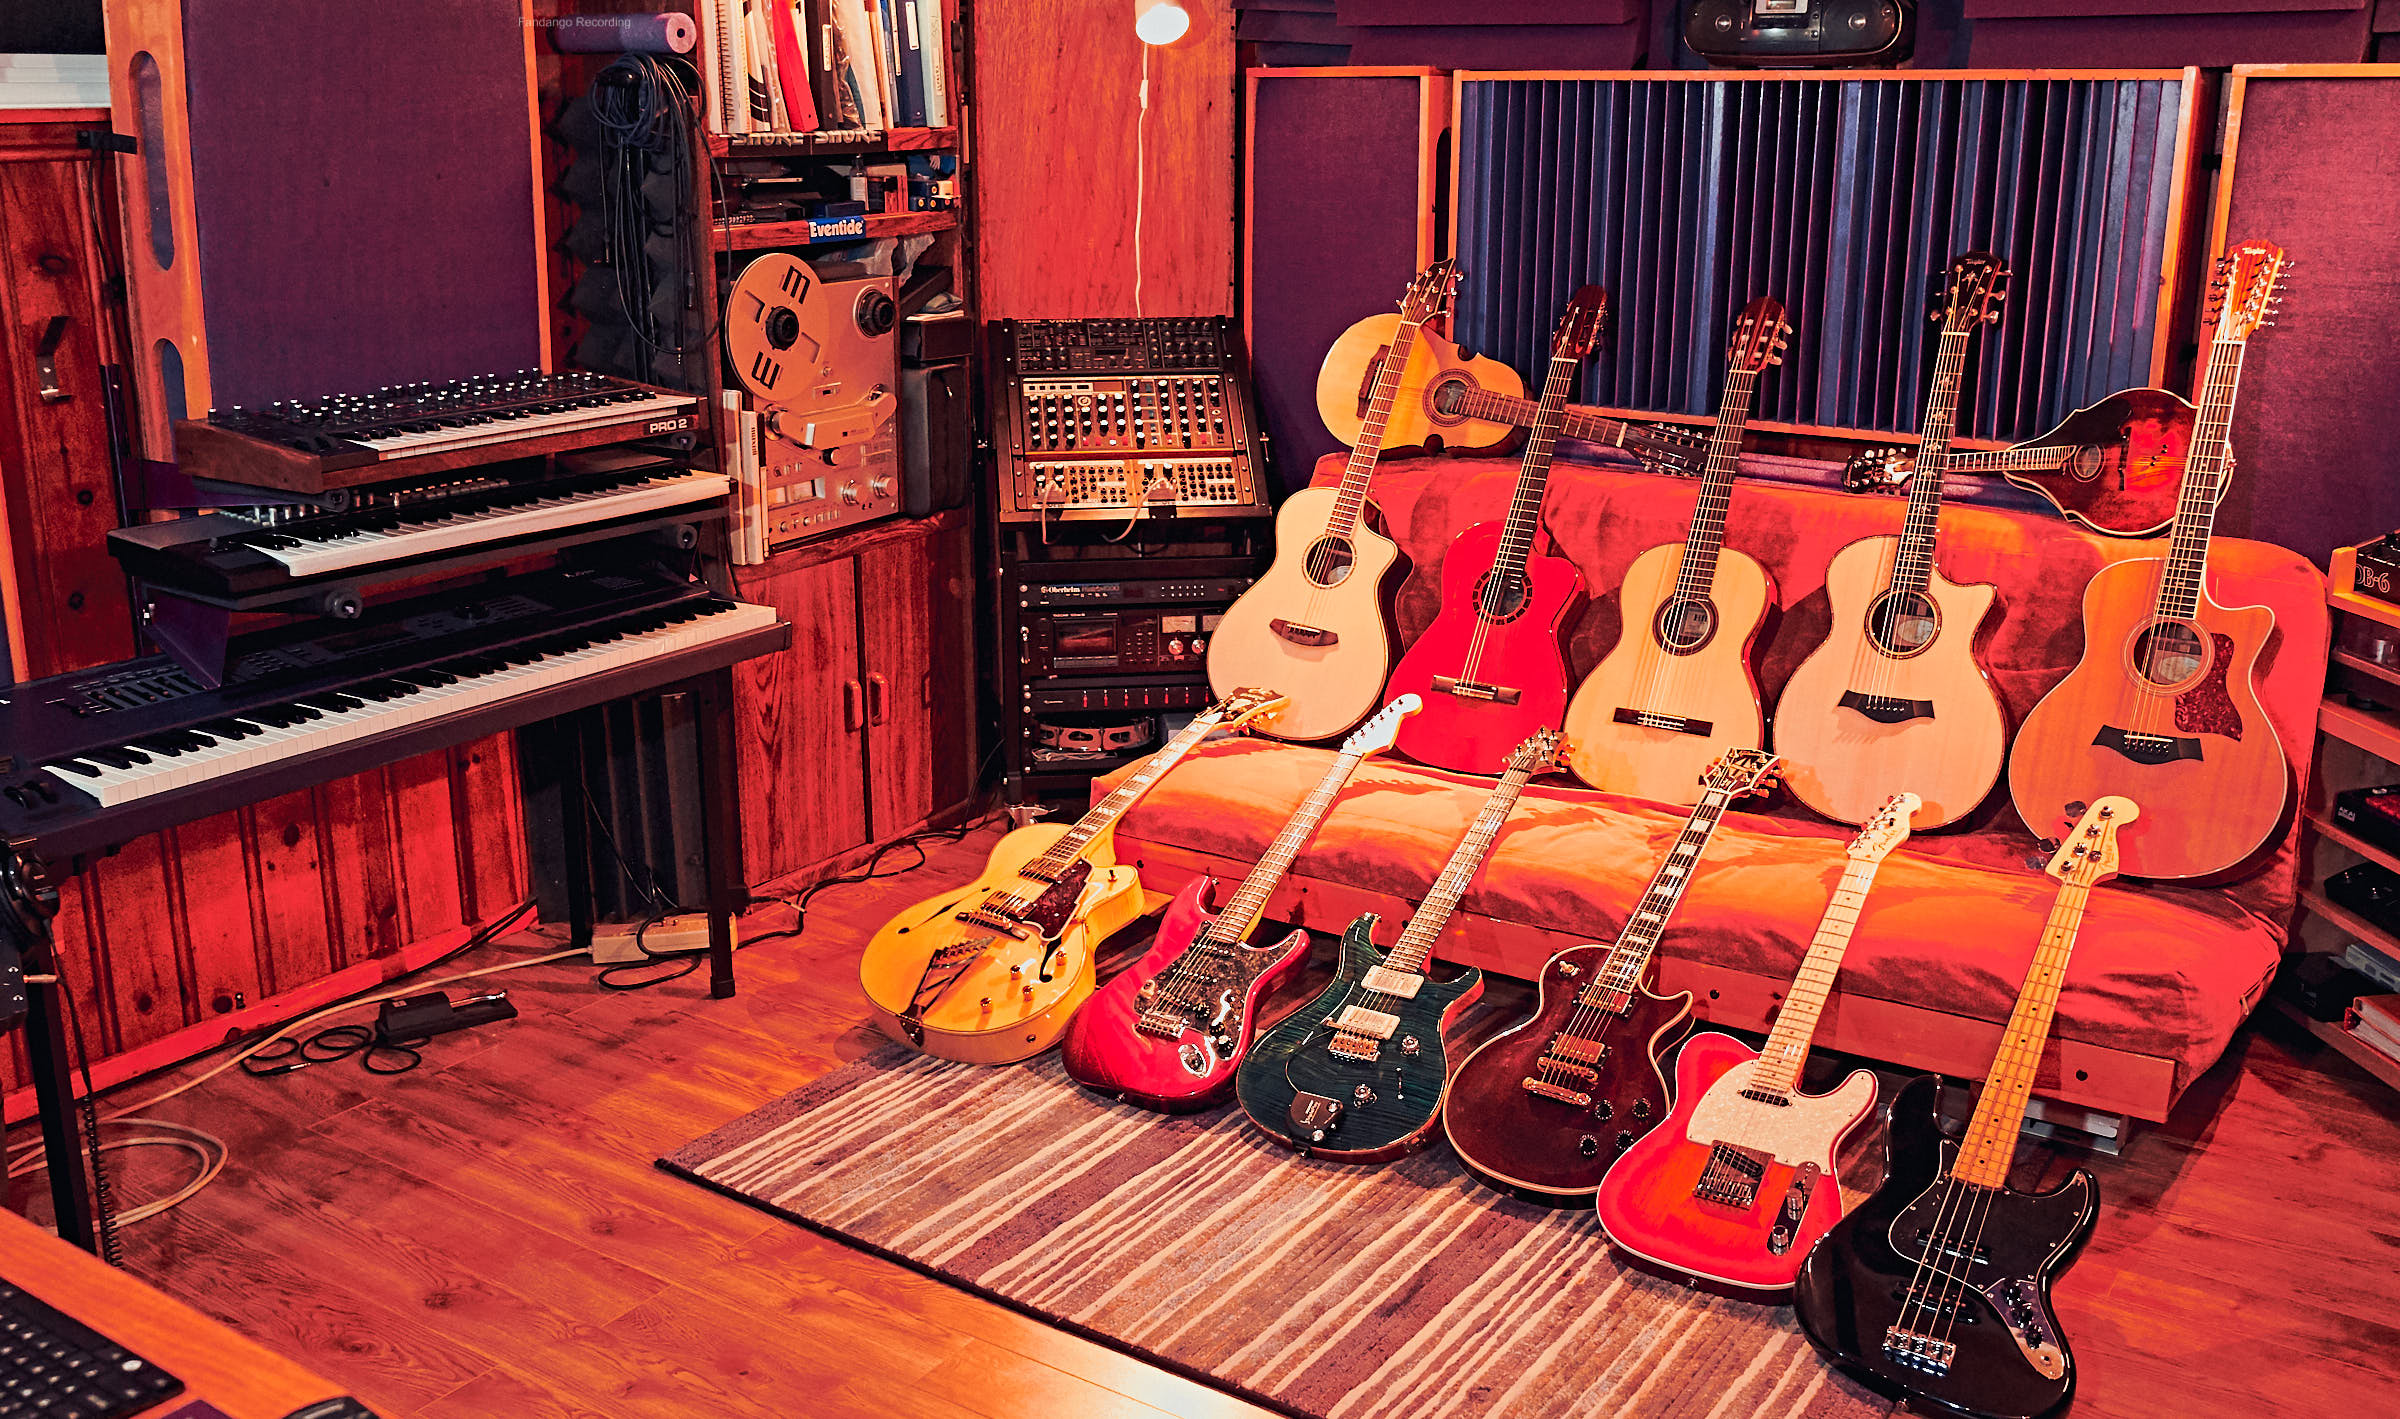 Variety of guitars and synths for music production use.